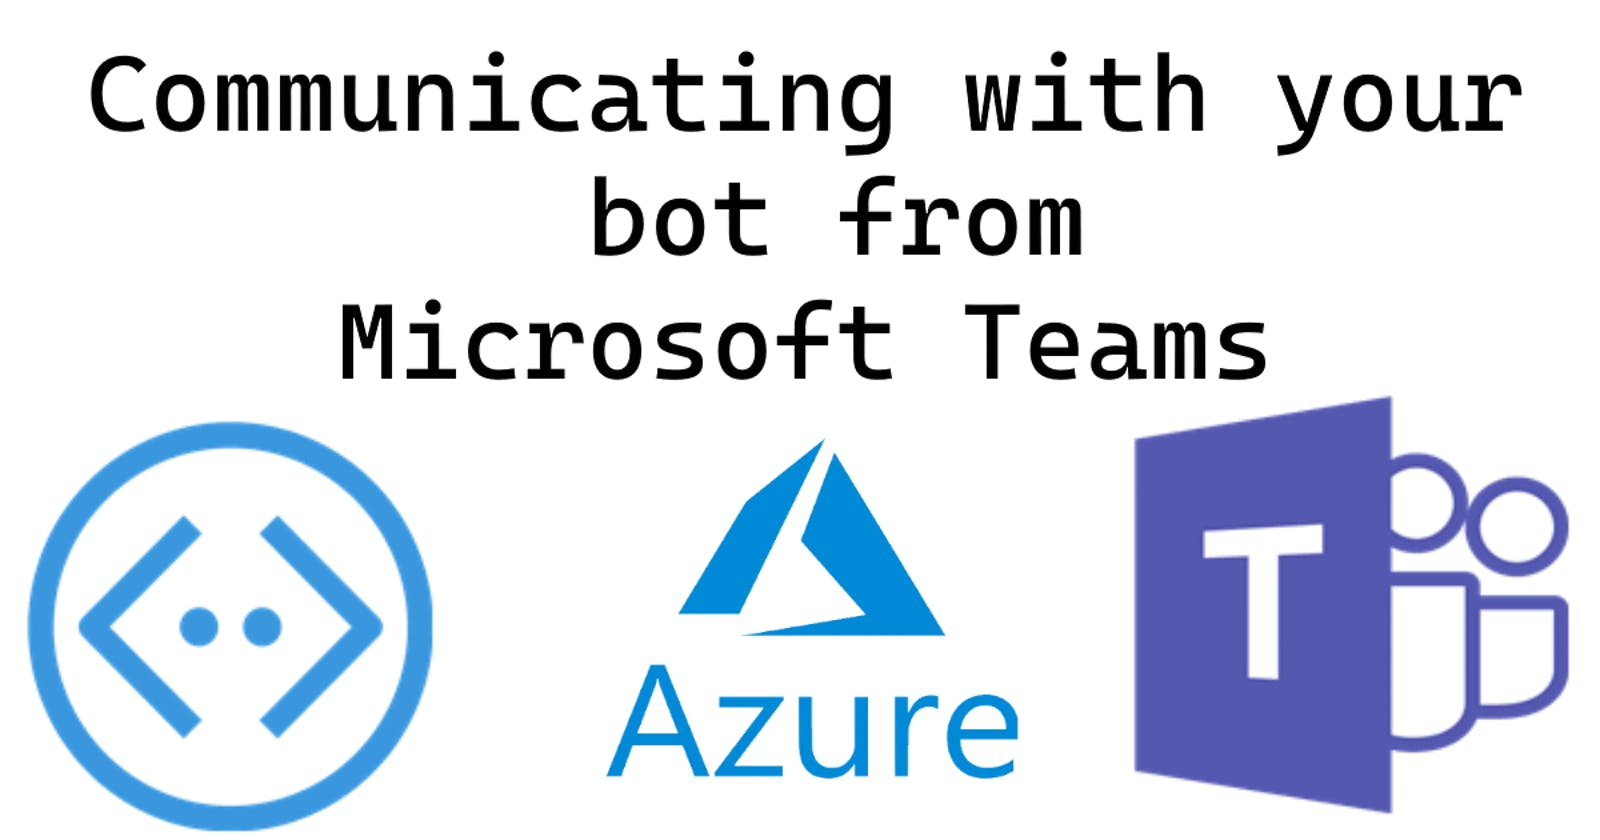 Communicating with your bot from Microsoft Teams